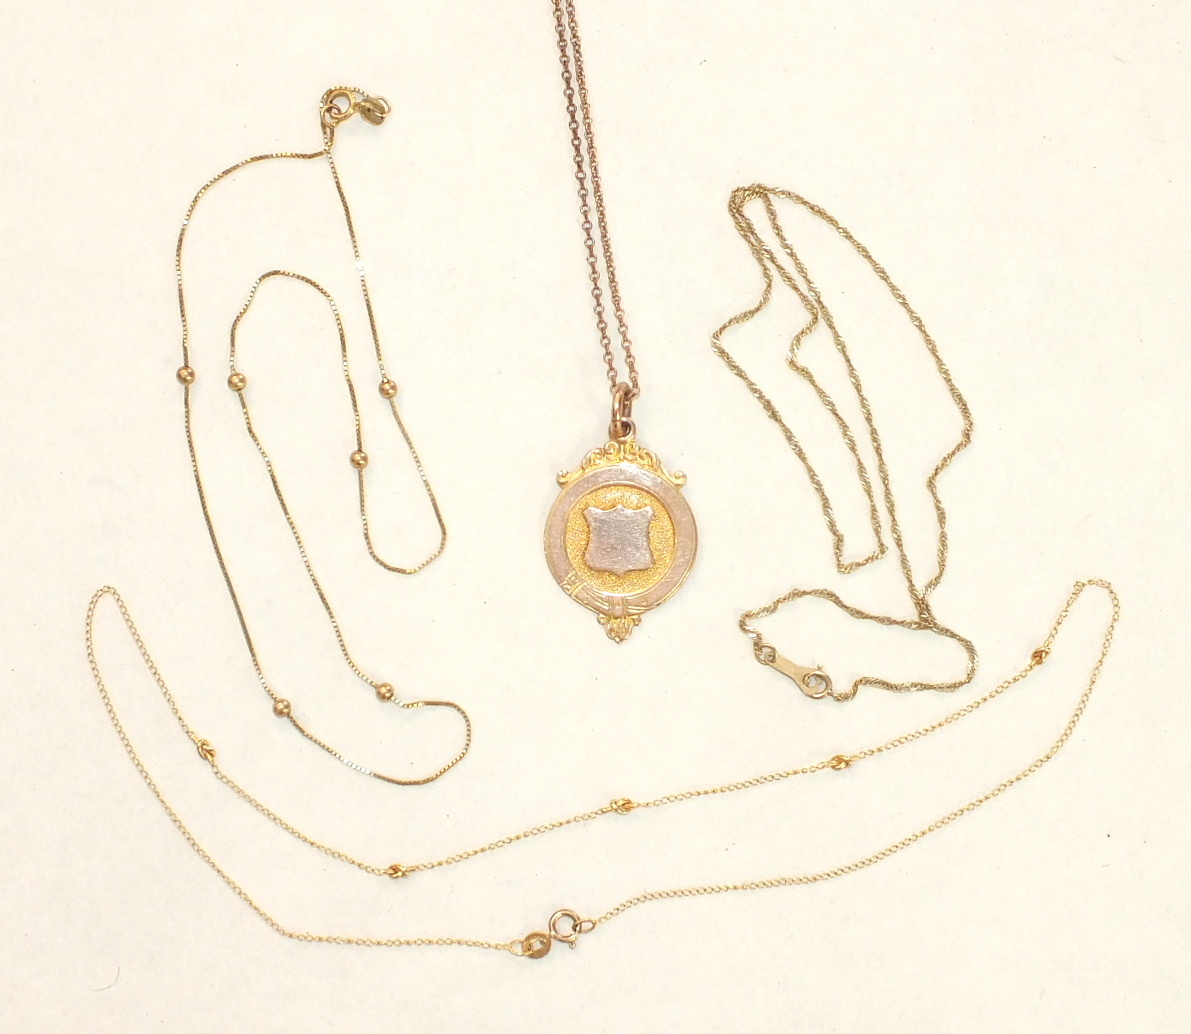 A 9ct gold medallion on chain and three other 9ct gold neck chains, 12.1g, (4).